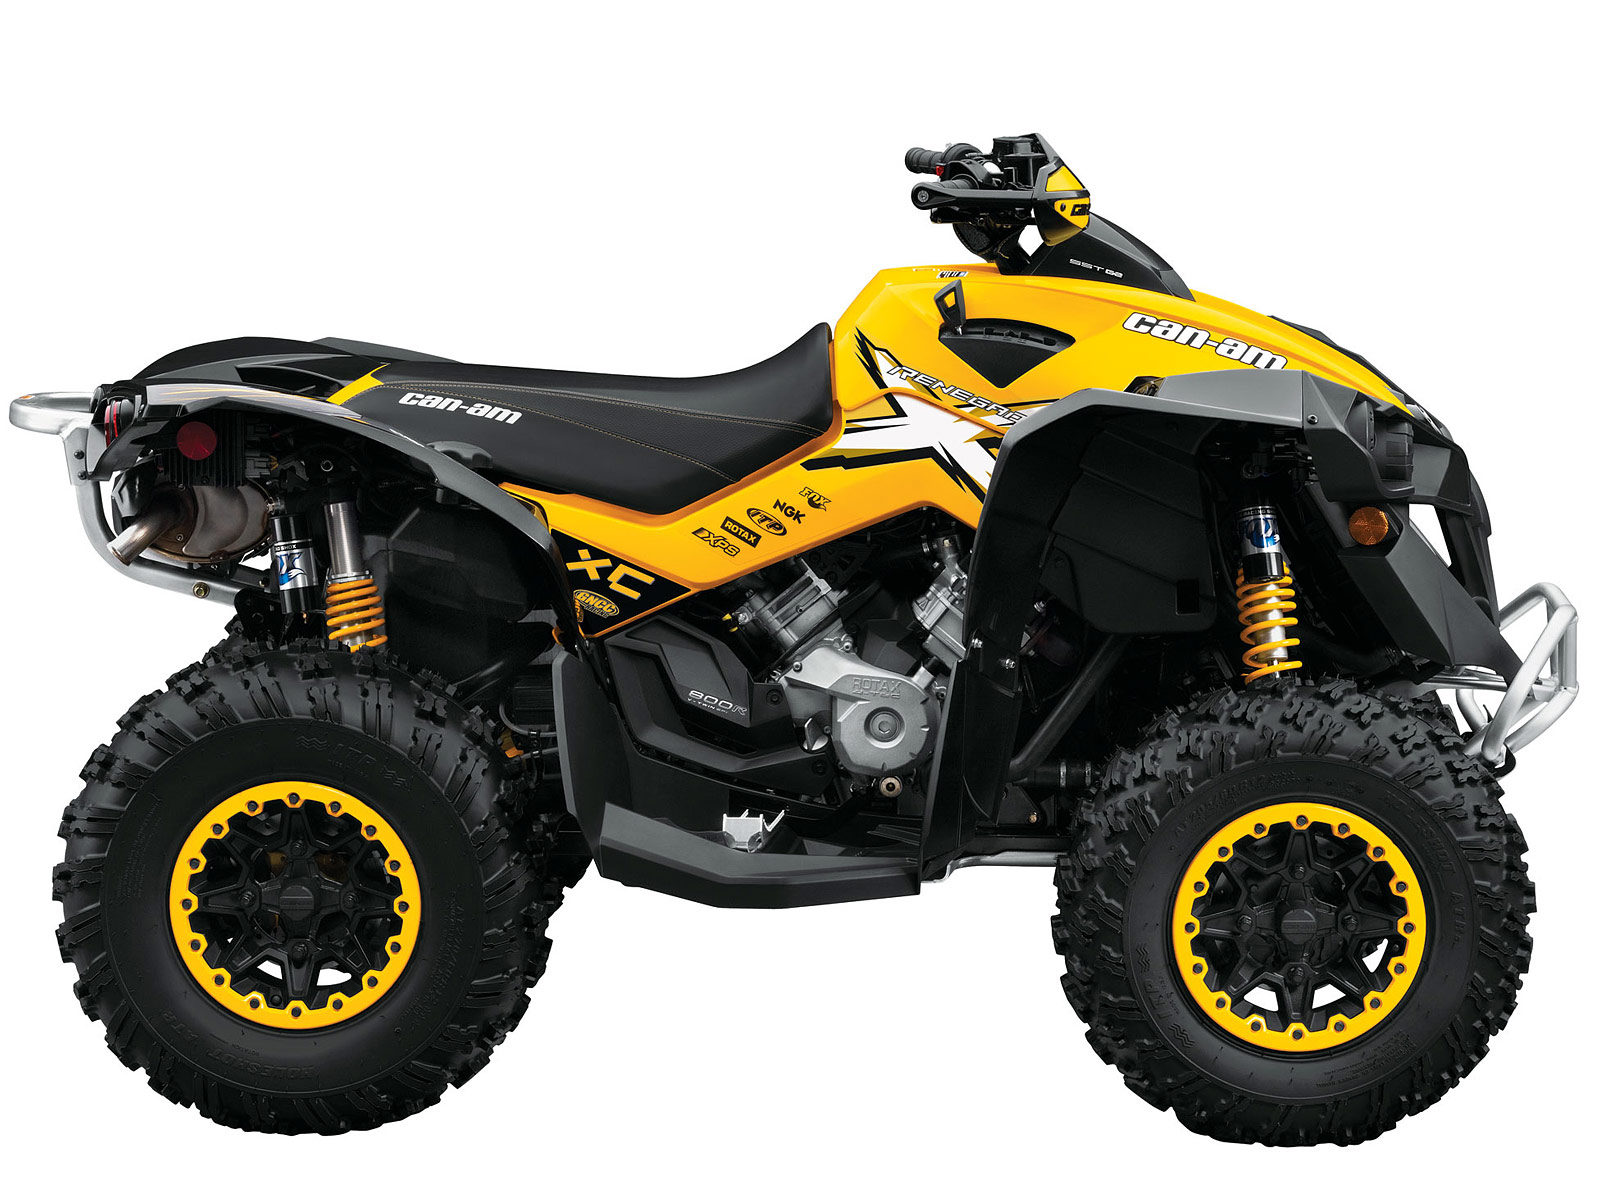 can am insurance information 2013 renegade xxc 800r atv. Black Bedroom Furniture Sets. Home Design Ideas